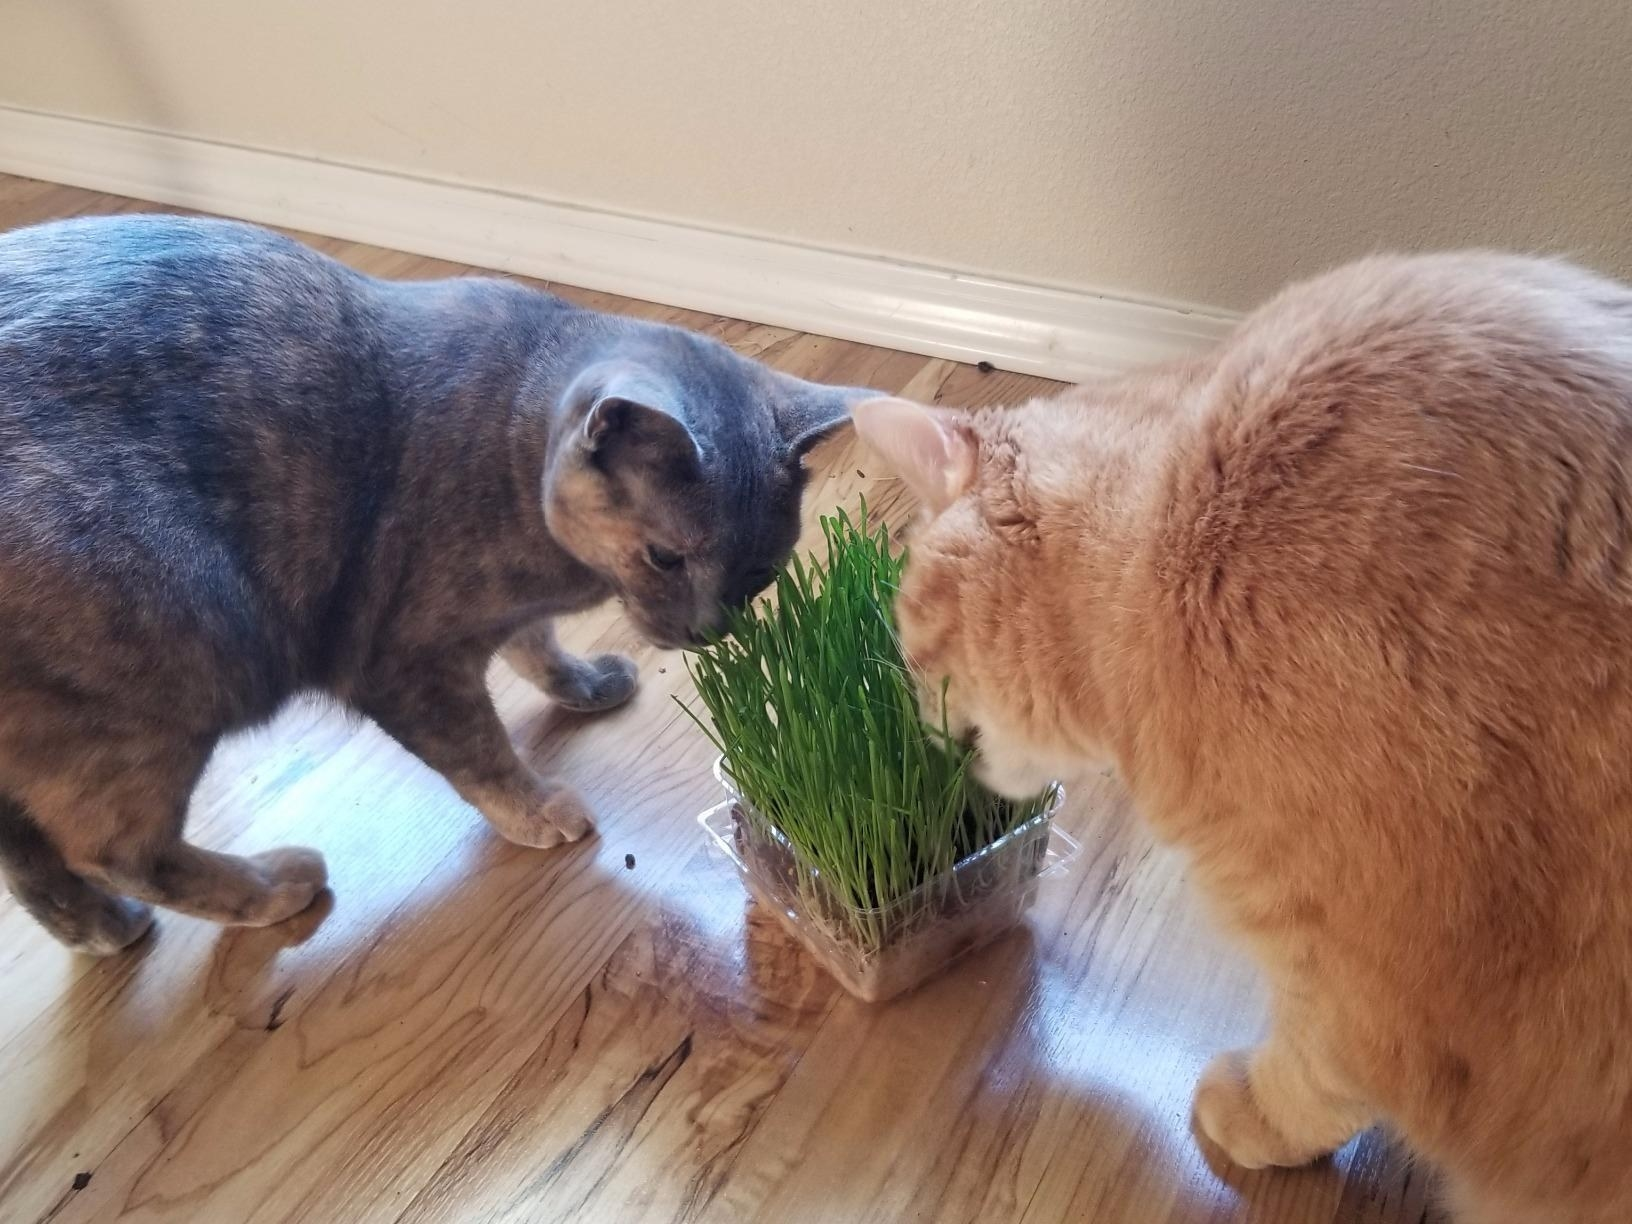 The fully grown grass with two cats munching